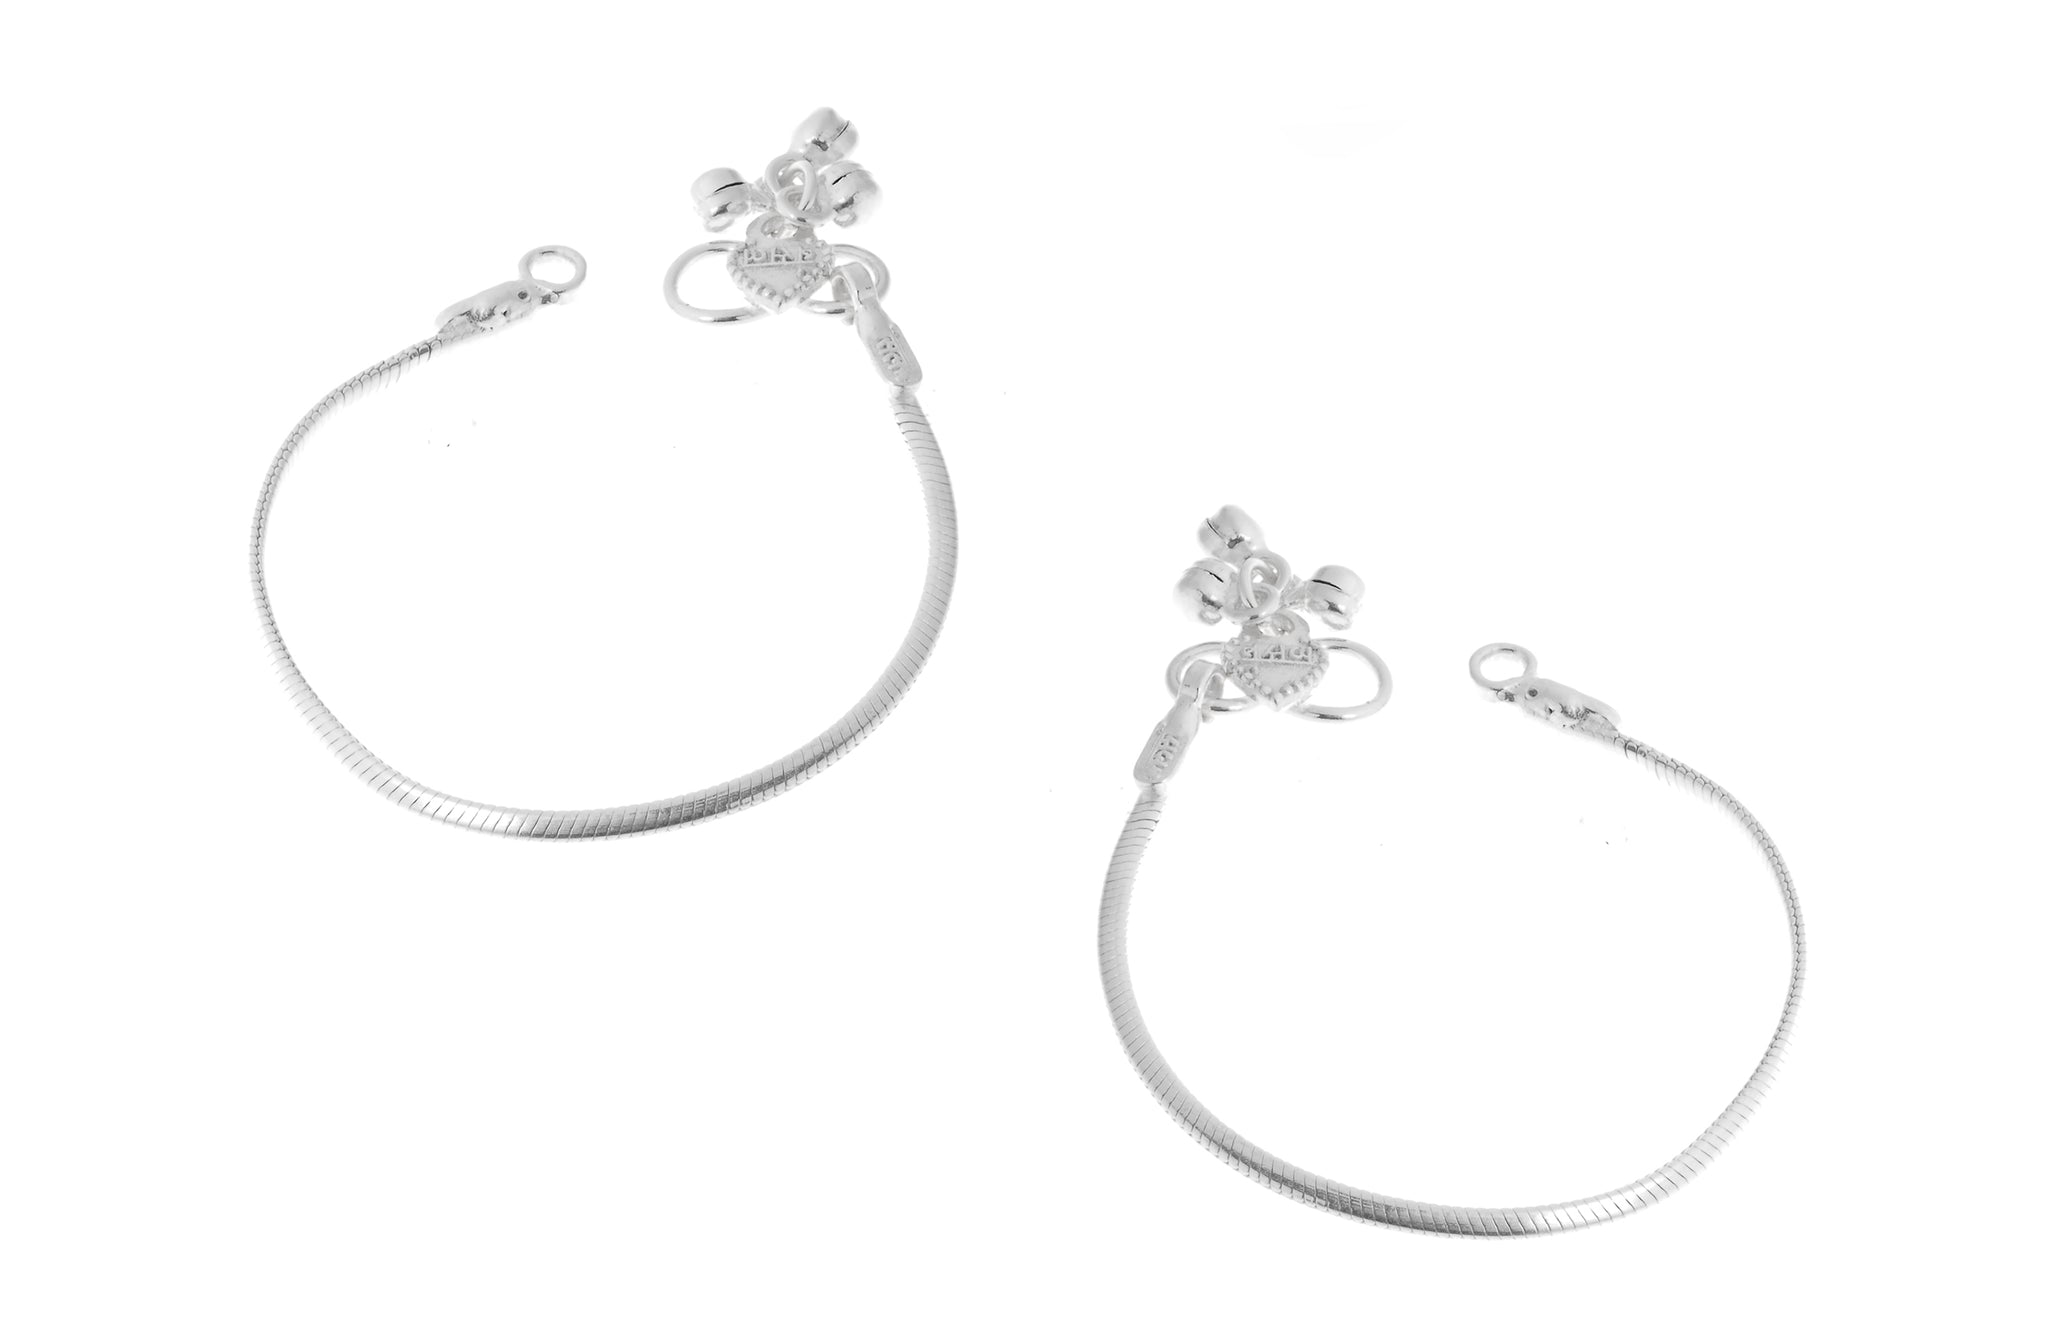 Silver Baby Anklets with Ghughri Bell Charms for Children (A-7154) - Pair